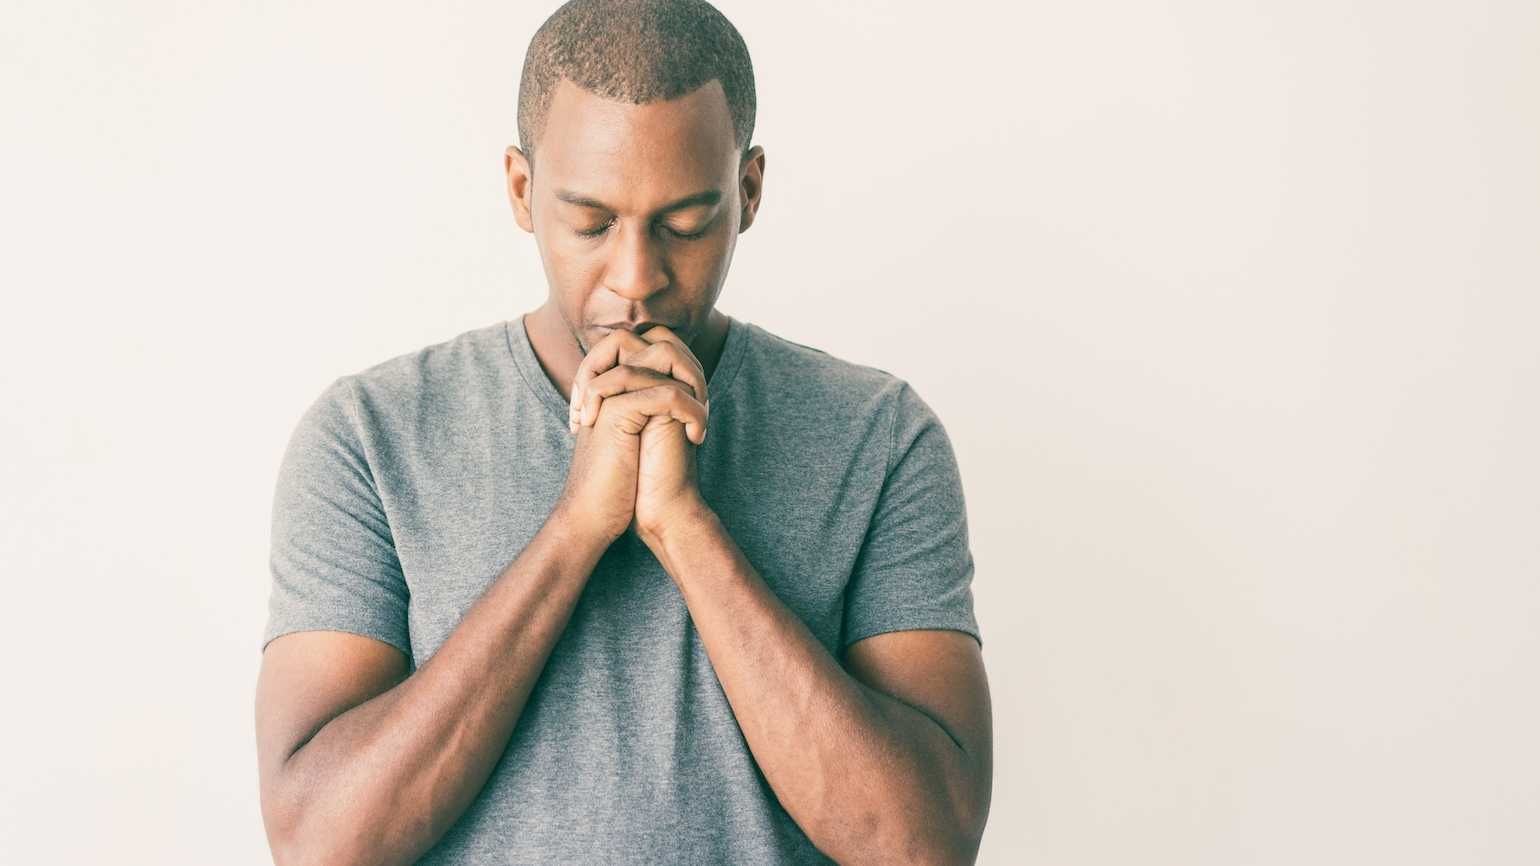 Positive prayer habits